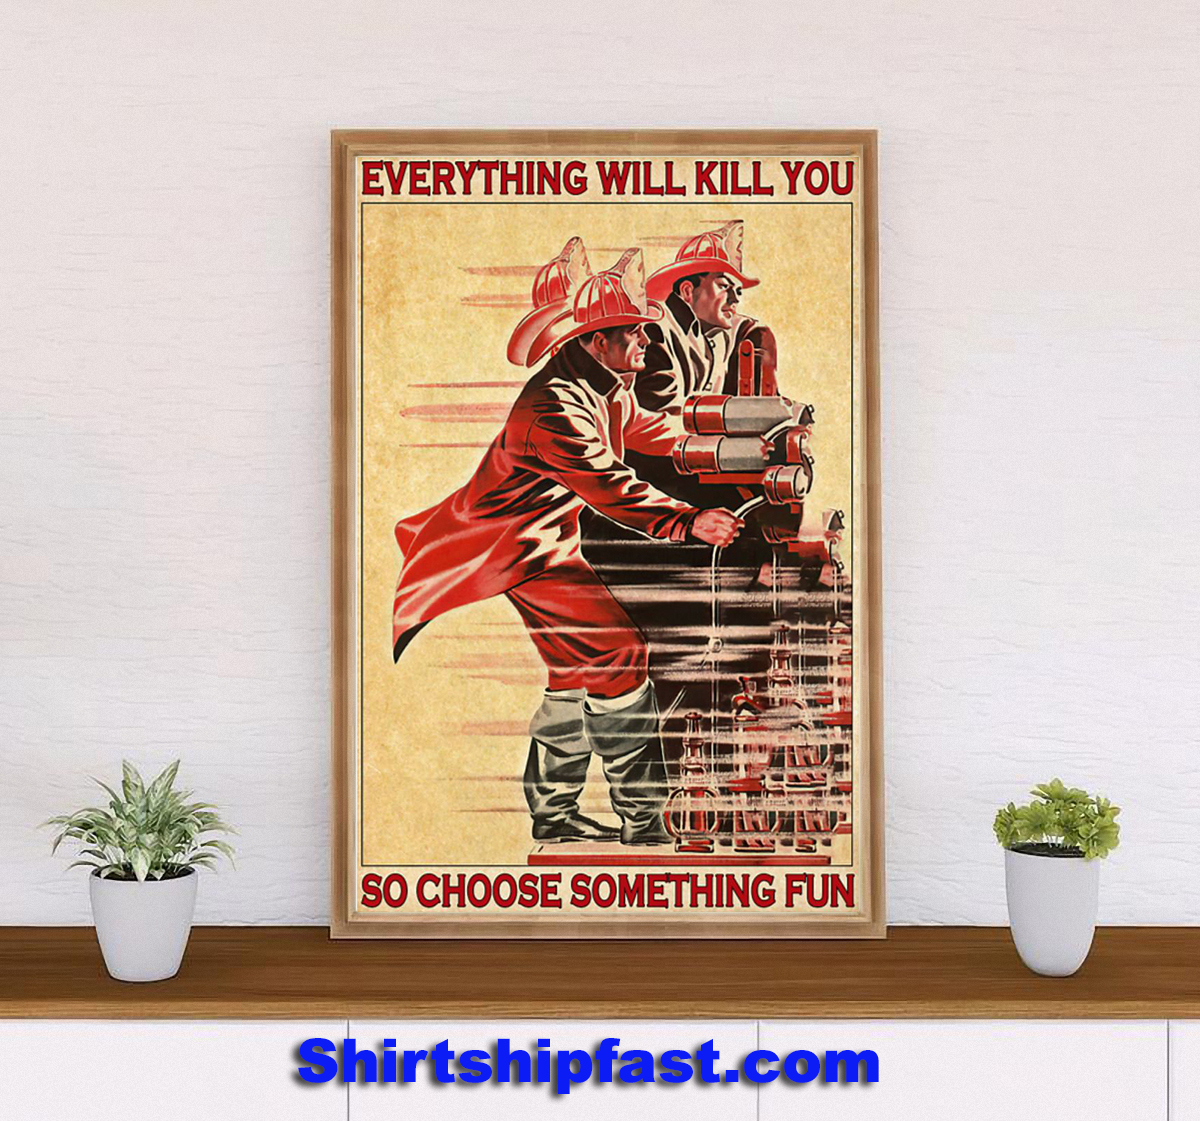 Firefighter everything will kill you so choose something fun canvas